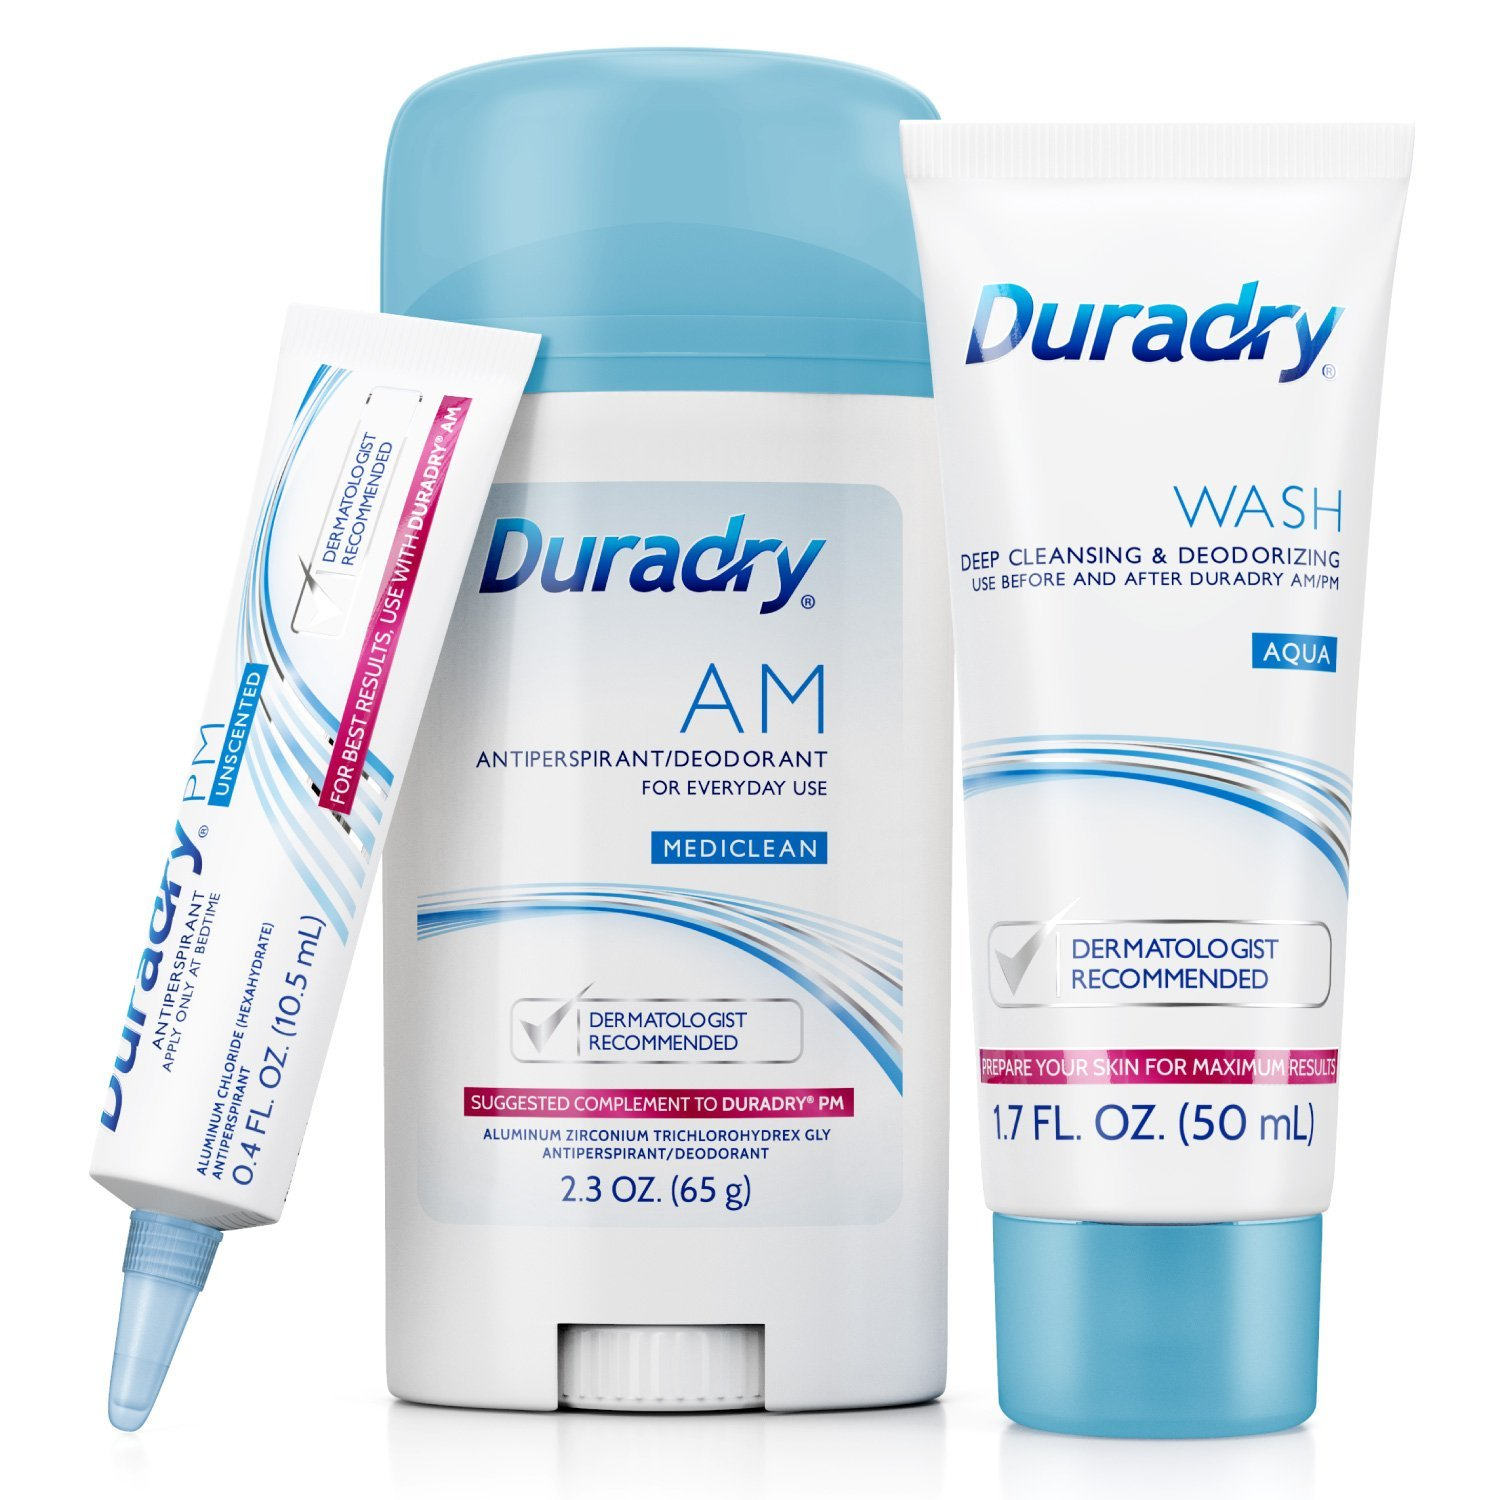 Duradry 3-Step Protection System - Prescription Strength Antiperspirant Deodorants Specially Formulated For Excessive Sweating or Hyperhidrosis. Block Sweat and Odor by Duradry